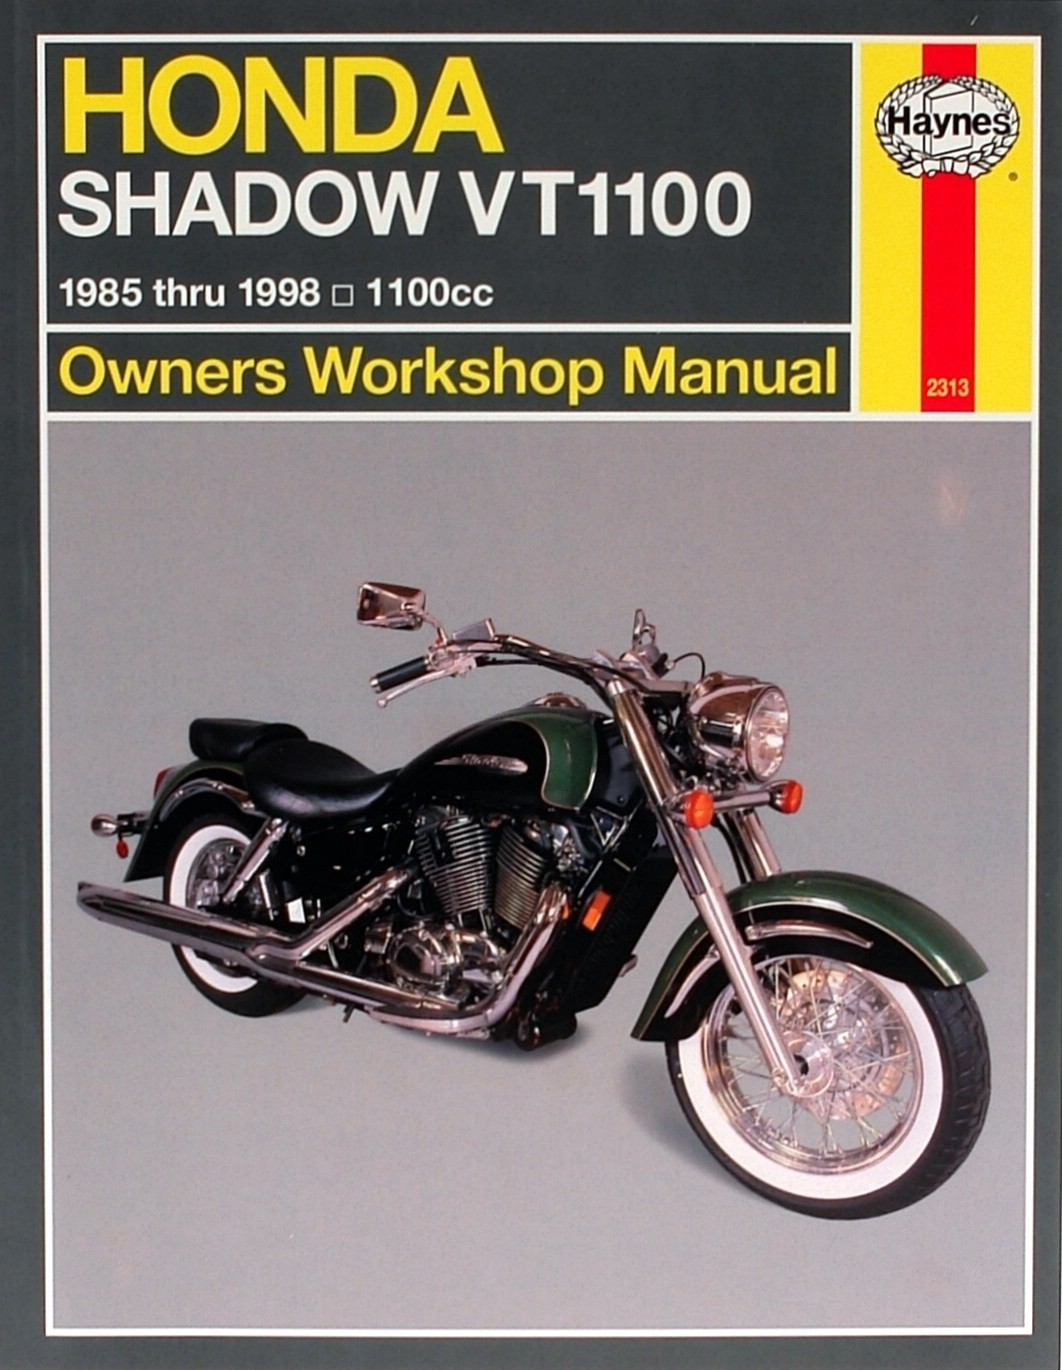 fits honda vt 1100 c2 shadow sabre usa 2003 2007 manuals haynes rh ebay co uk 2007 Honda Sabre Accessories 2007 honda shadow spirit 1100 service manual